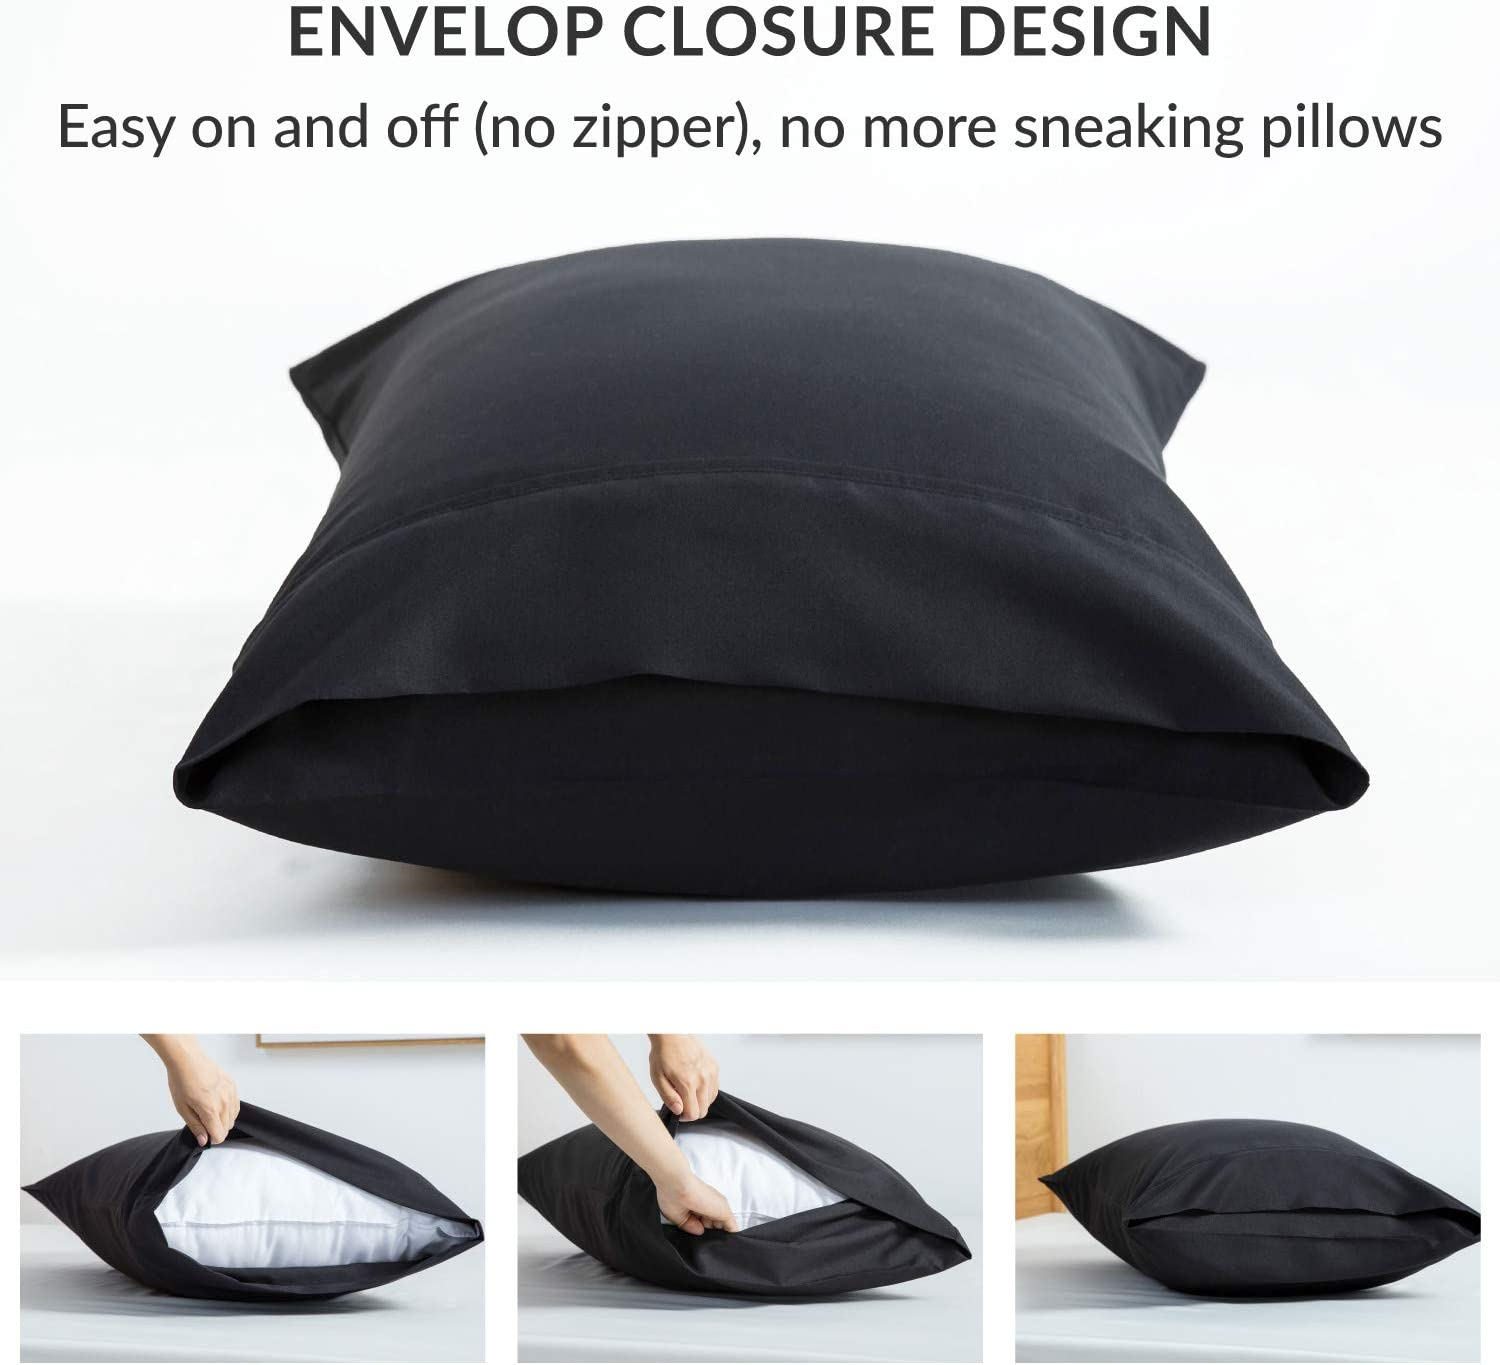 Bedsure Brushed Microfiber Pillow Cases Black Pillowcases 2 pack with Envelope Closure 50 x 75 cm